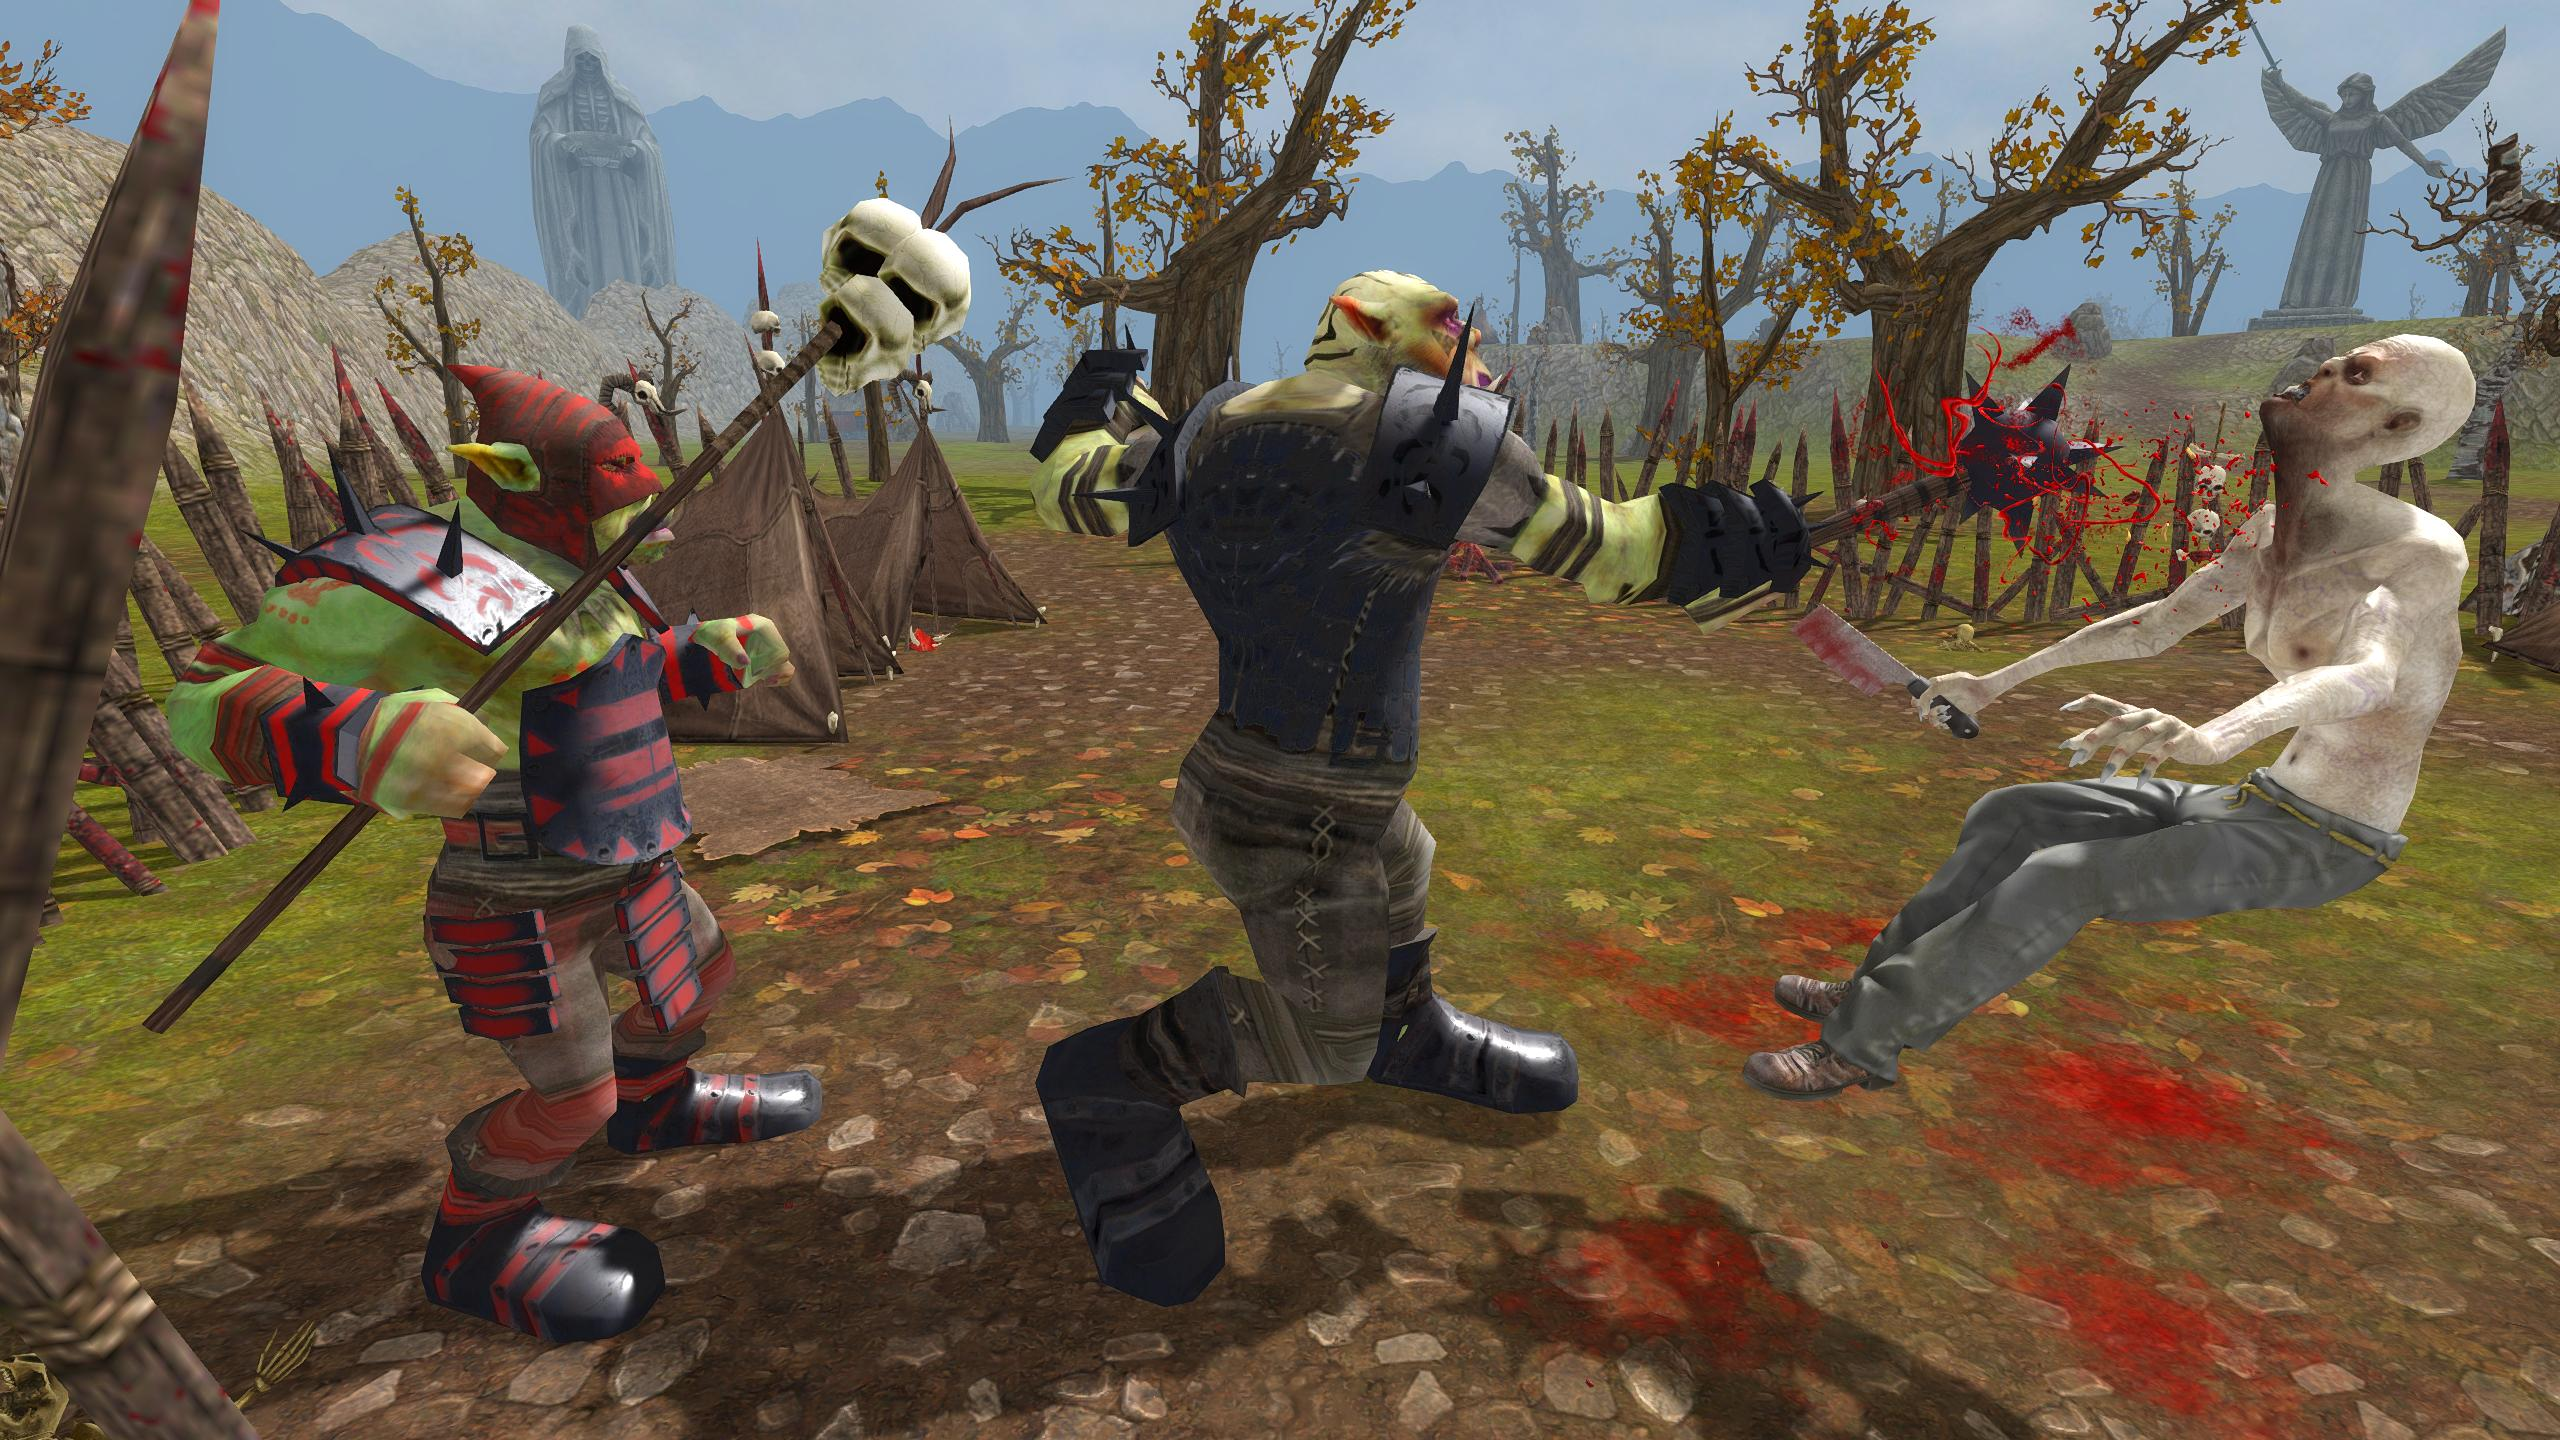 Butcher Zombie Open World RPG for Android - APK Download